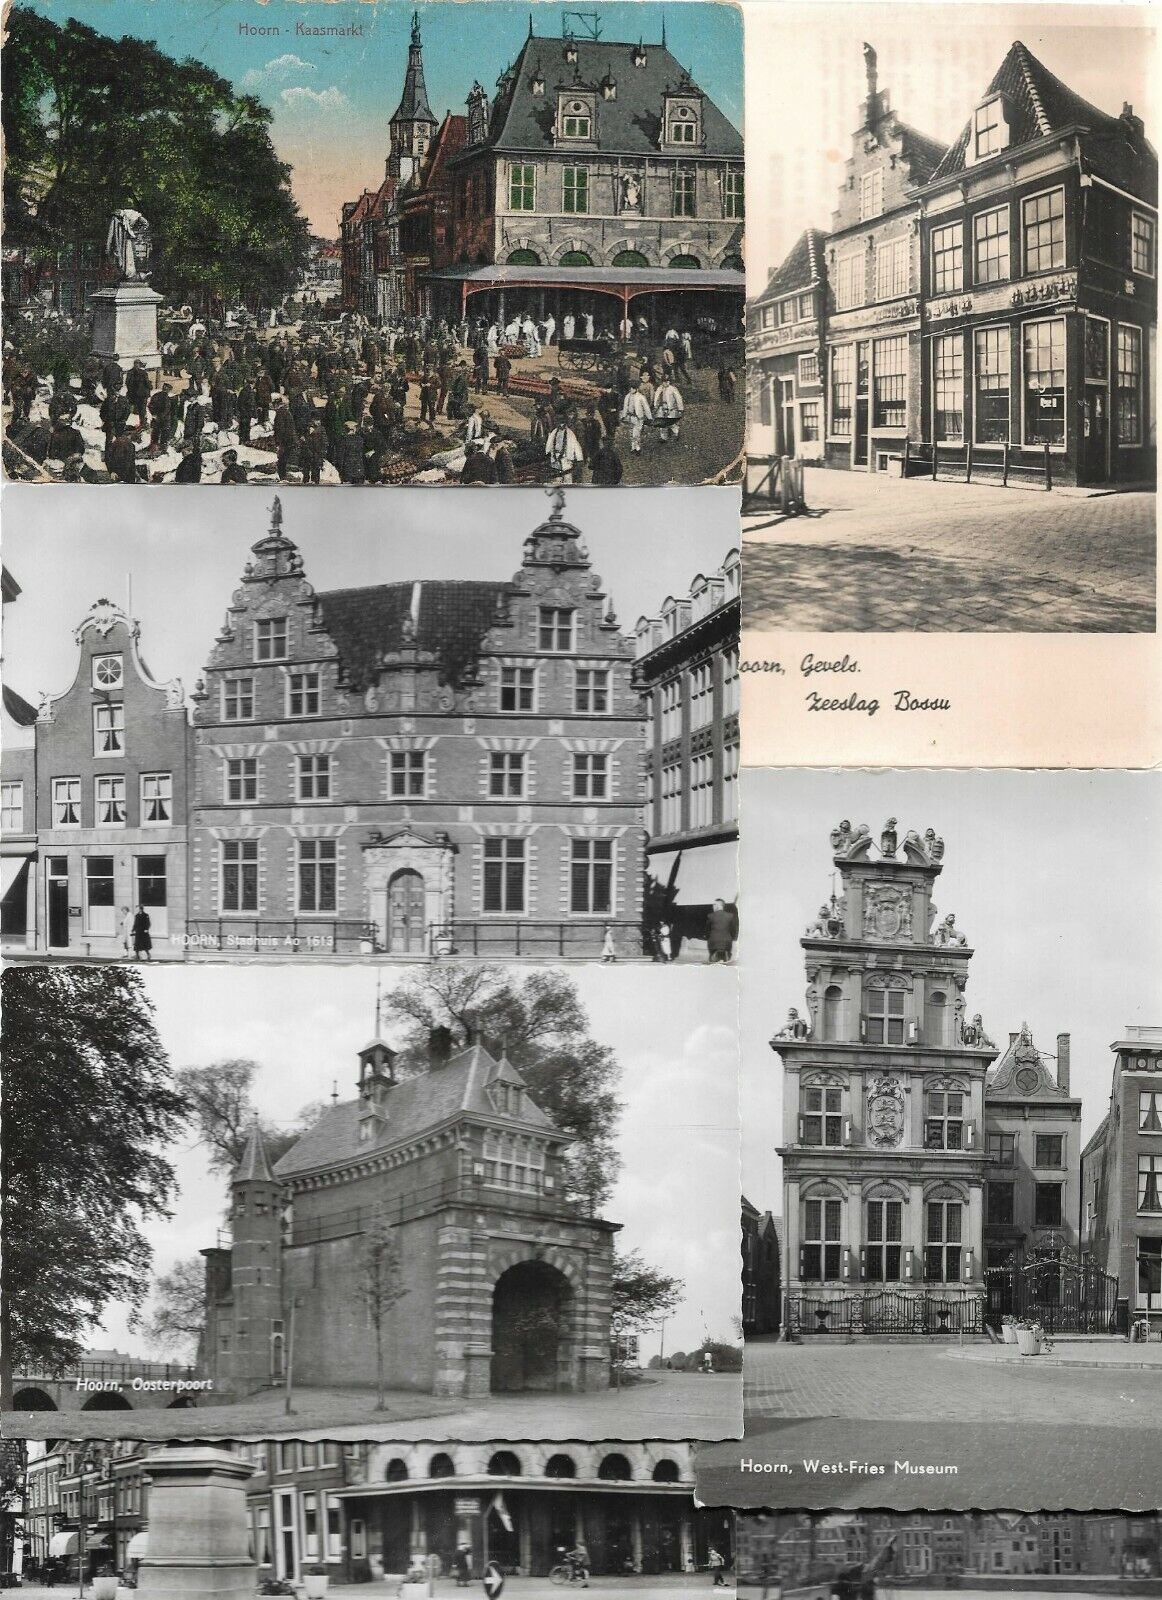 Netherlands Hoorn Museum and more Postcard Lot of 49 RPPC and Printed 01.04 Без бренда